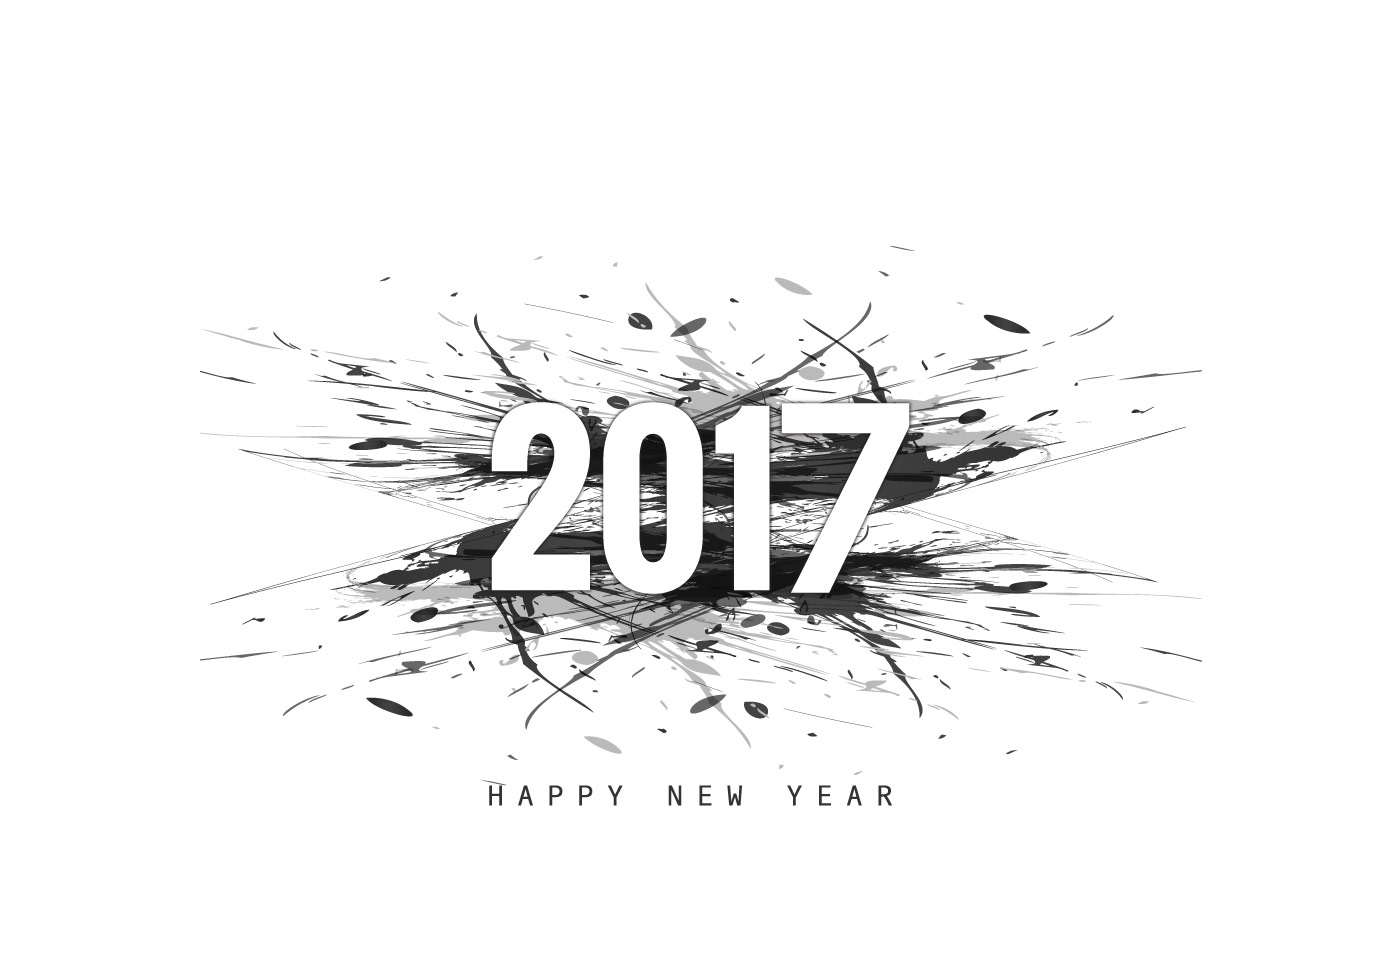 2017 New Year Greeting Card Design - Download Free Vector Art, Stock ...